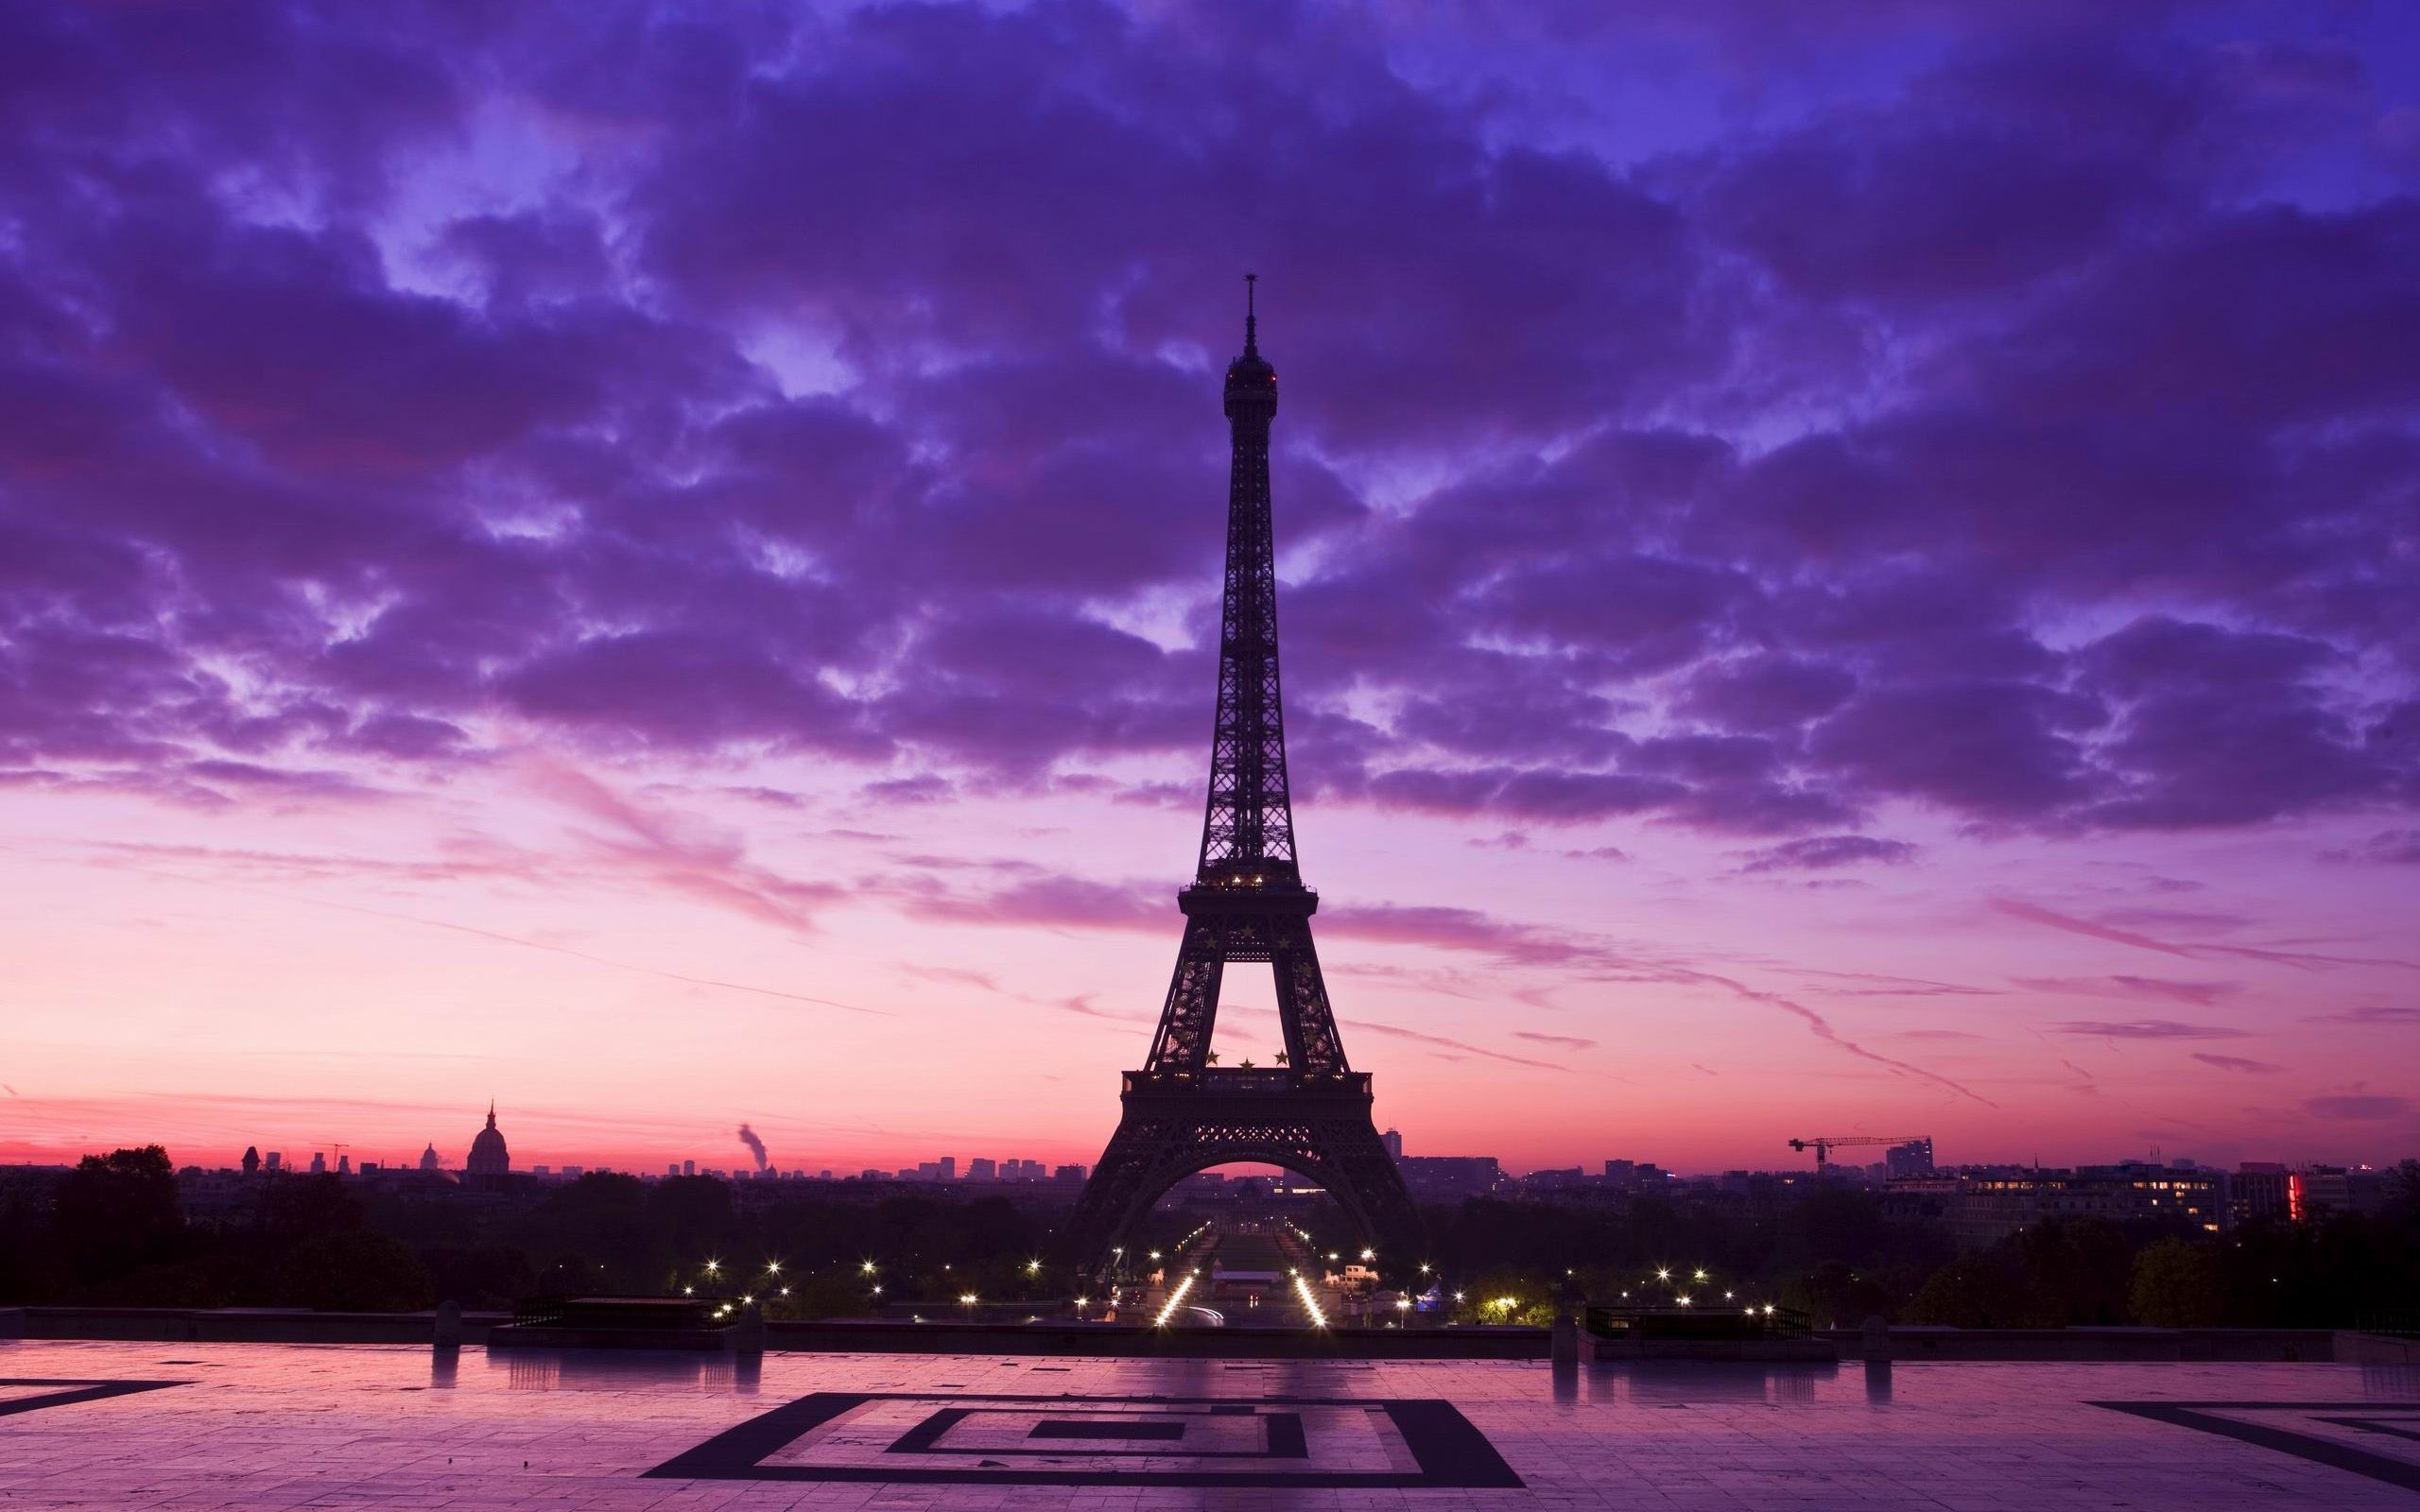 Res: 2560x1600, Wonderful Paris Photos and Pictures, Paris HD Widescreen Wallpapers